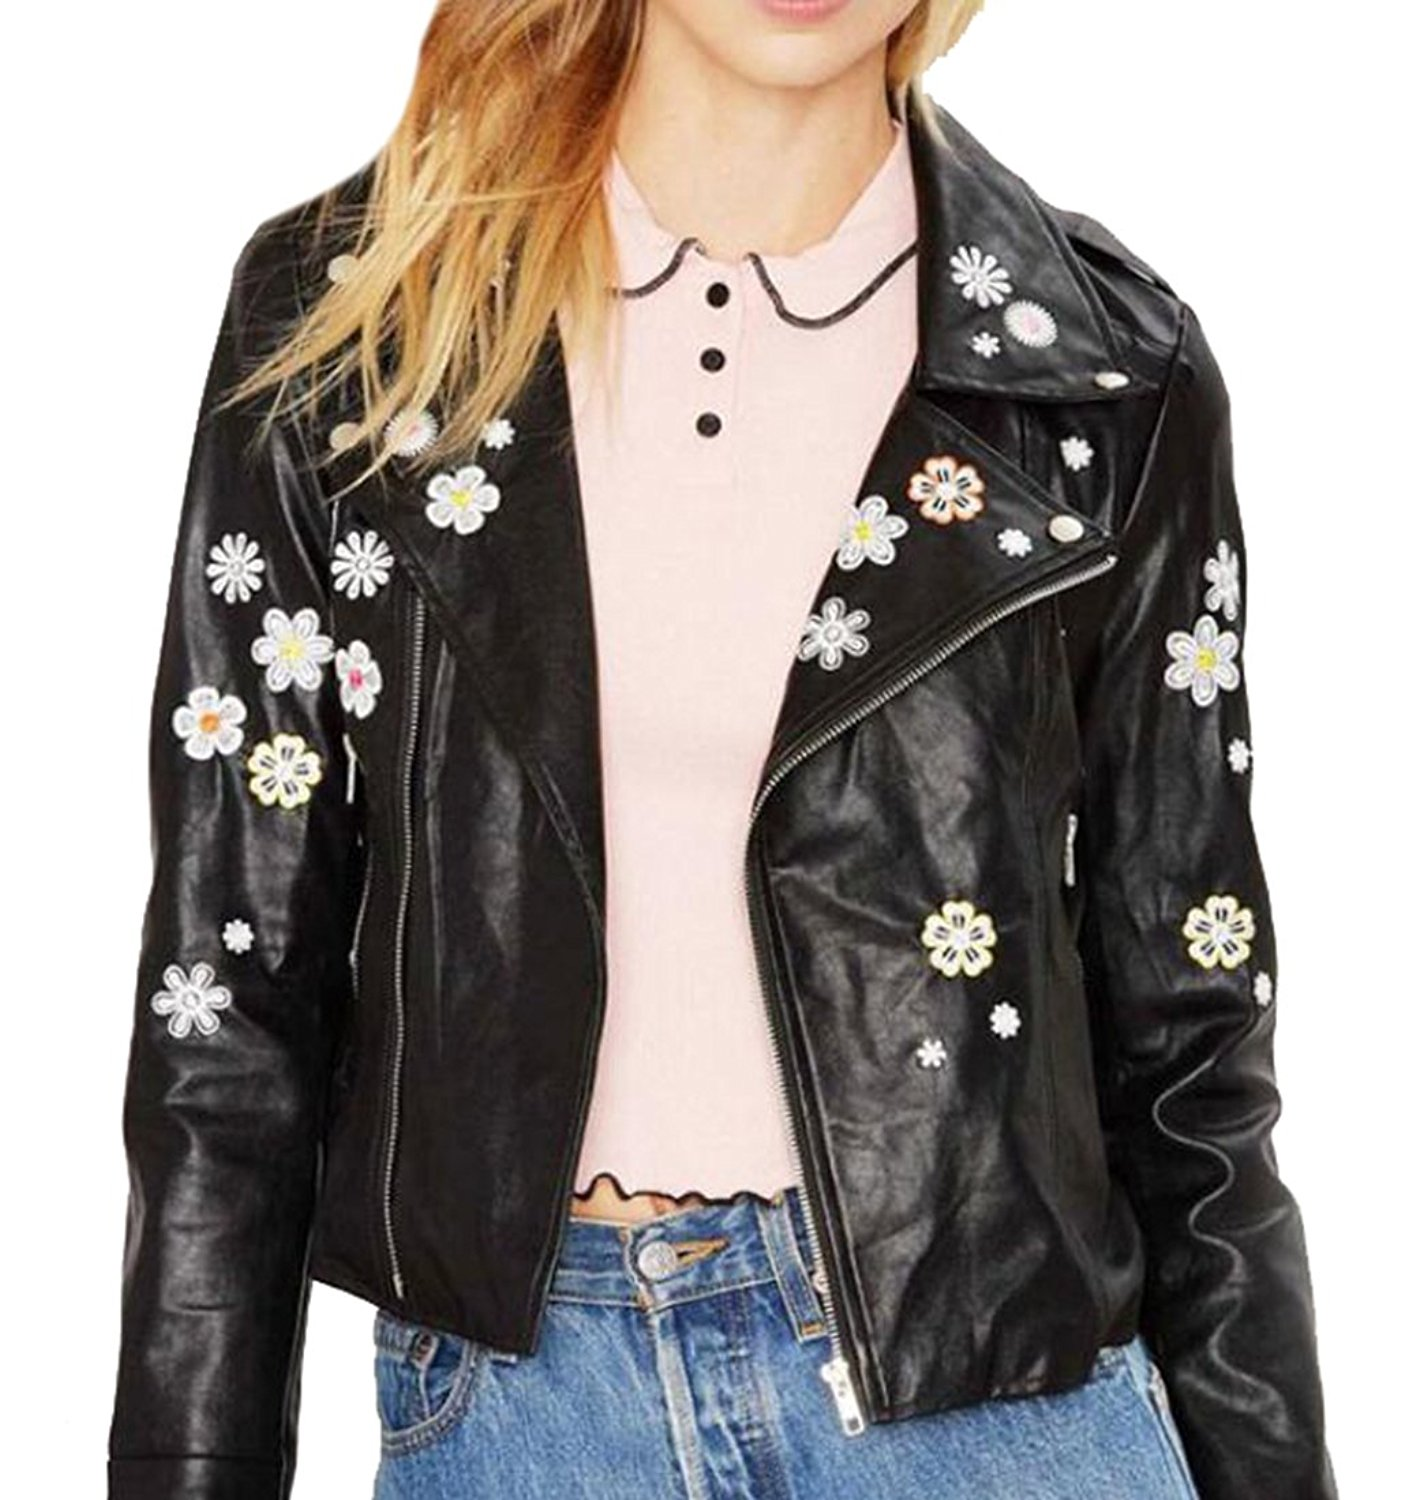 YUNY Women's Fashion Flower Embroidery Faux Leather Moto Jacket at Amazon Women's Coats Shop